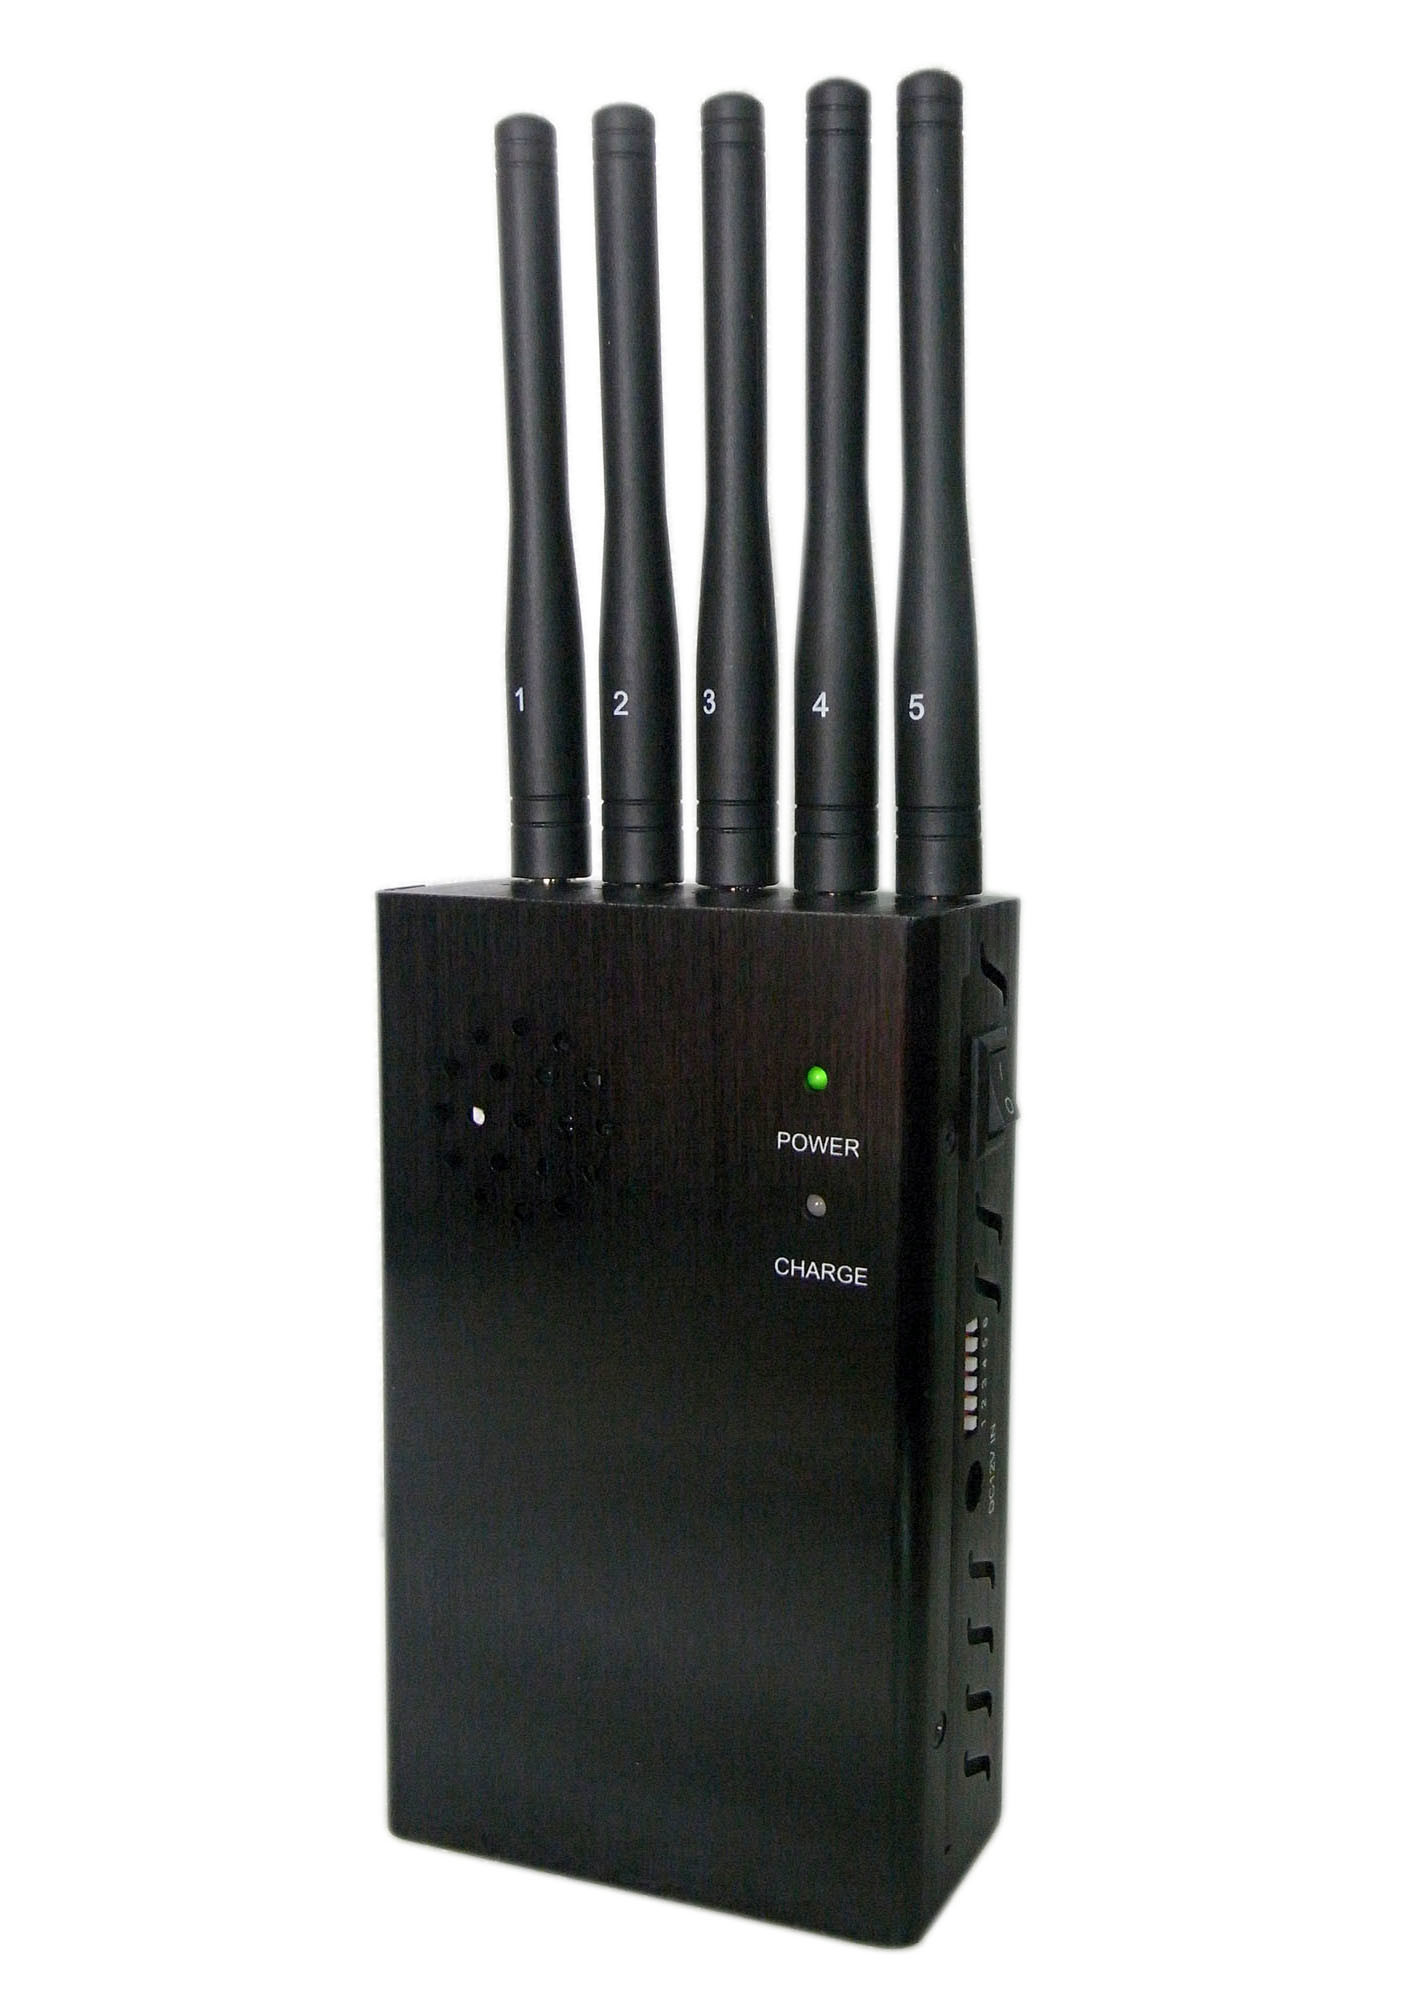 phone data jammer laws - China Wireless 5 Antenna 2g/3G/4G Jammer/Blocker, High Power Handheld Portable Cellphone Wireless Jamer-Omnidirectional Antennas - China 5 Band Signal Blockers, Five Antennas Jammers